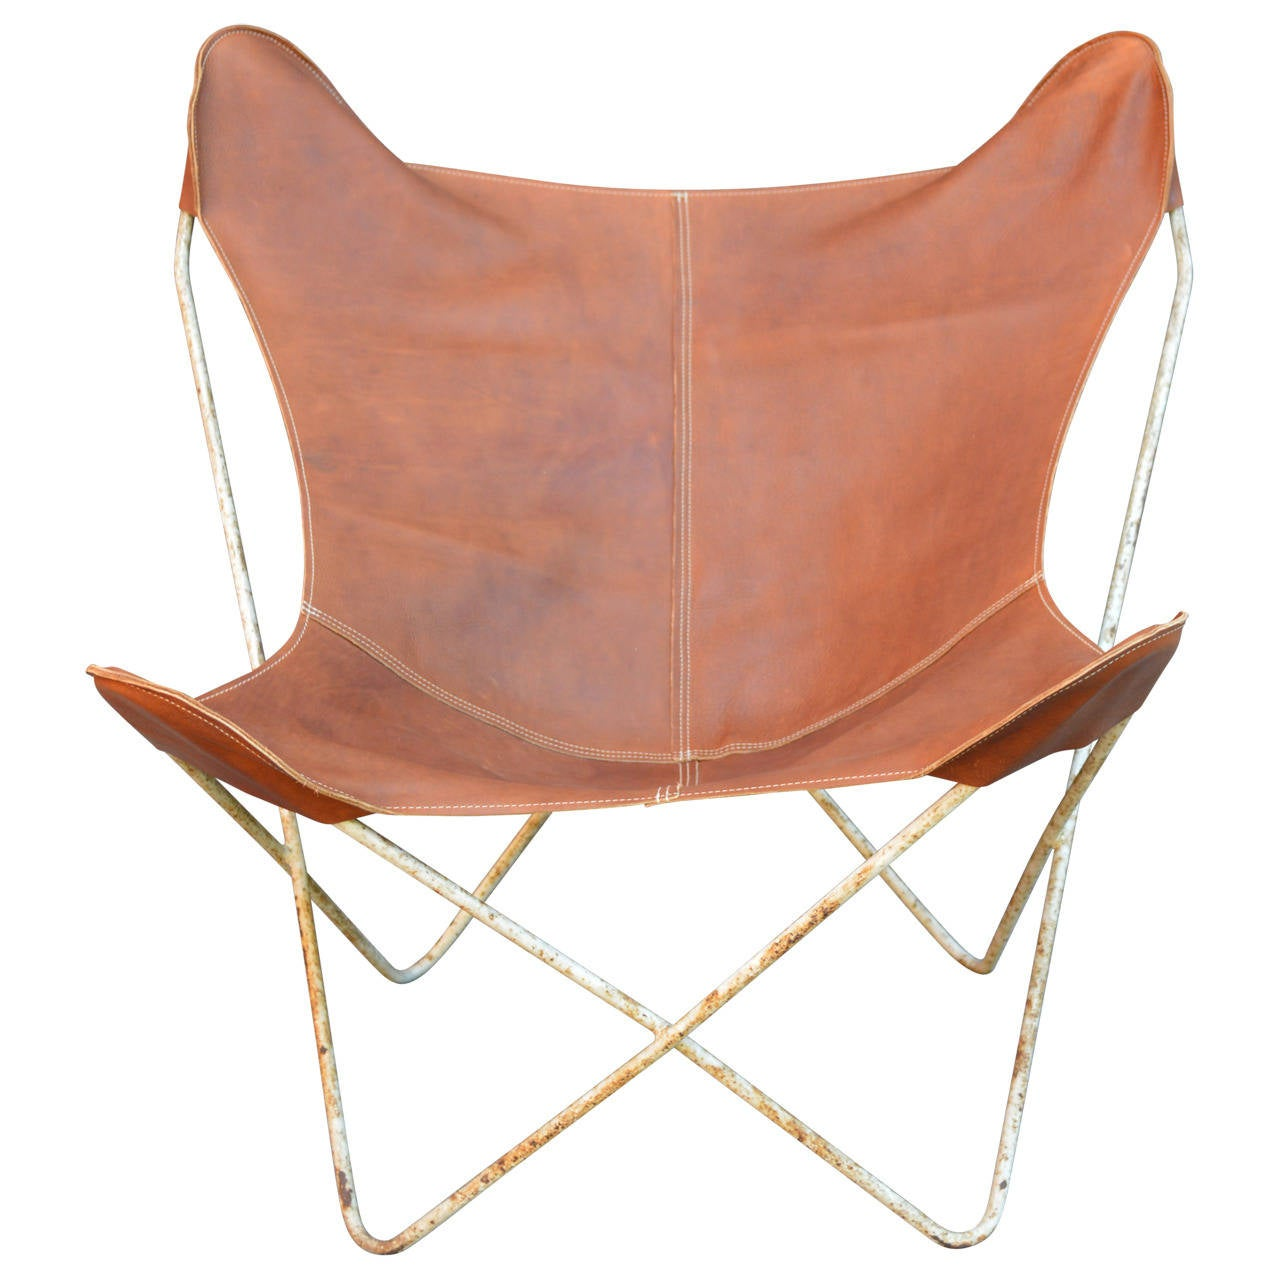 Great vintage butterfly chair frame with removable rustic chestnut brown leather cover.